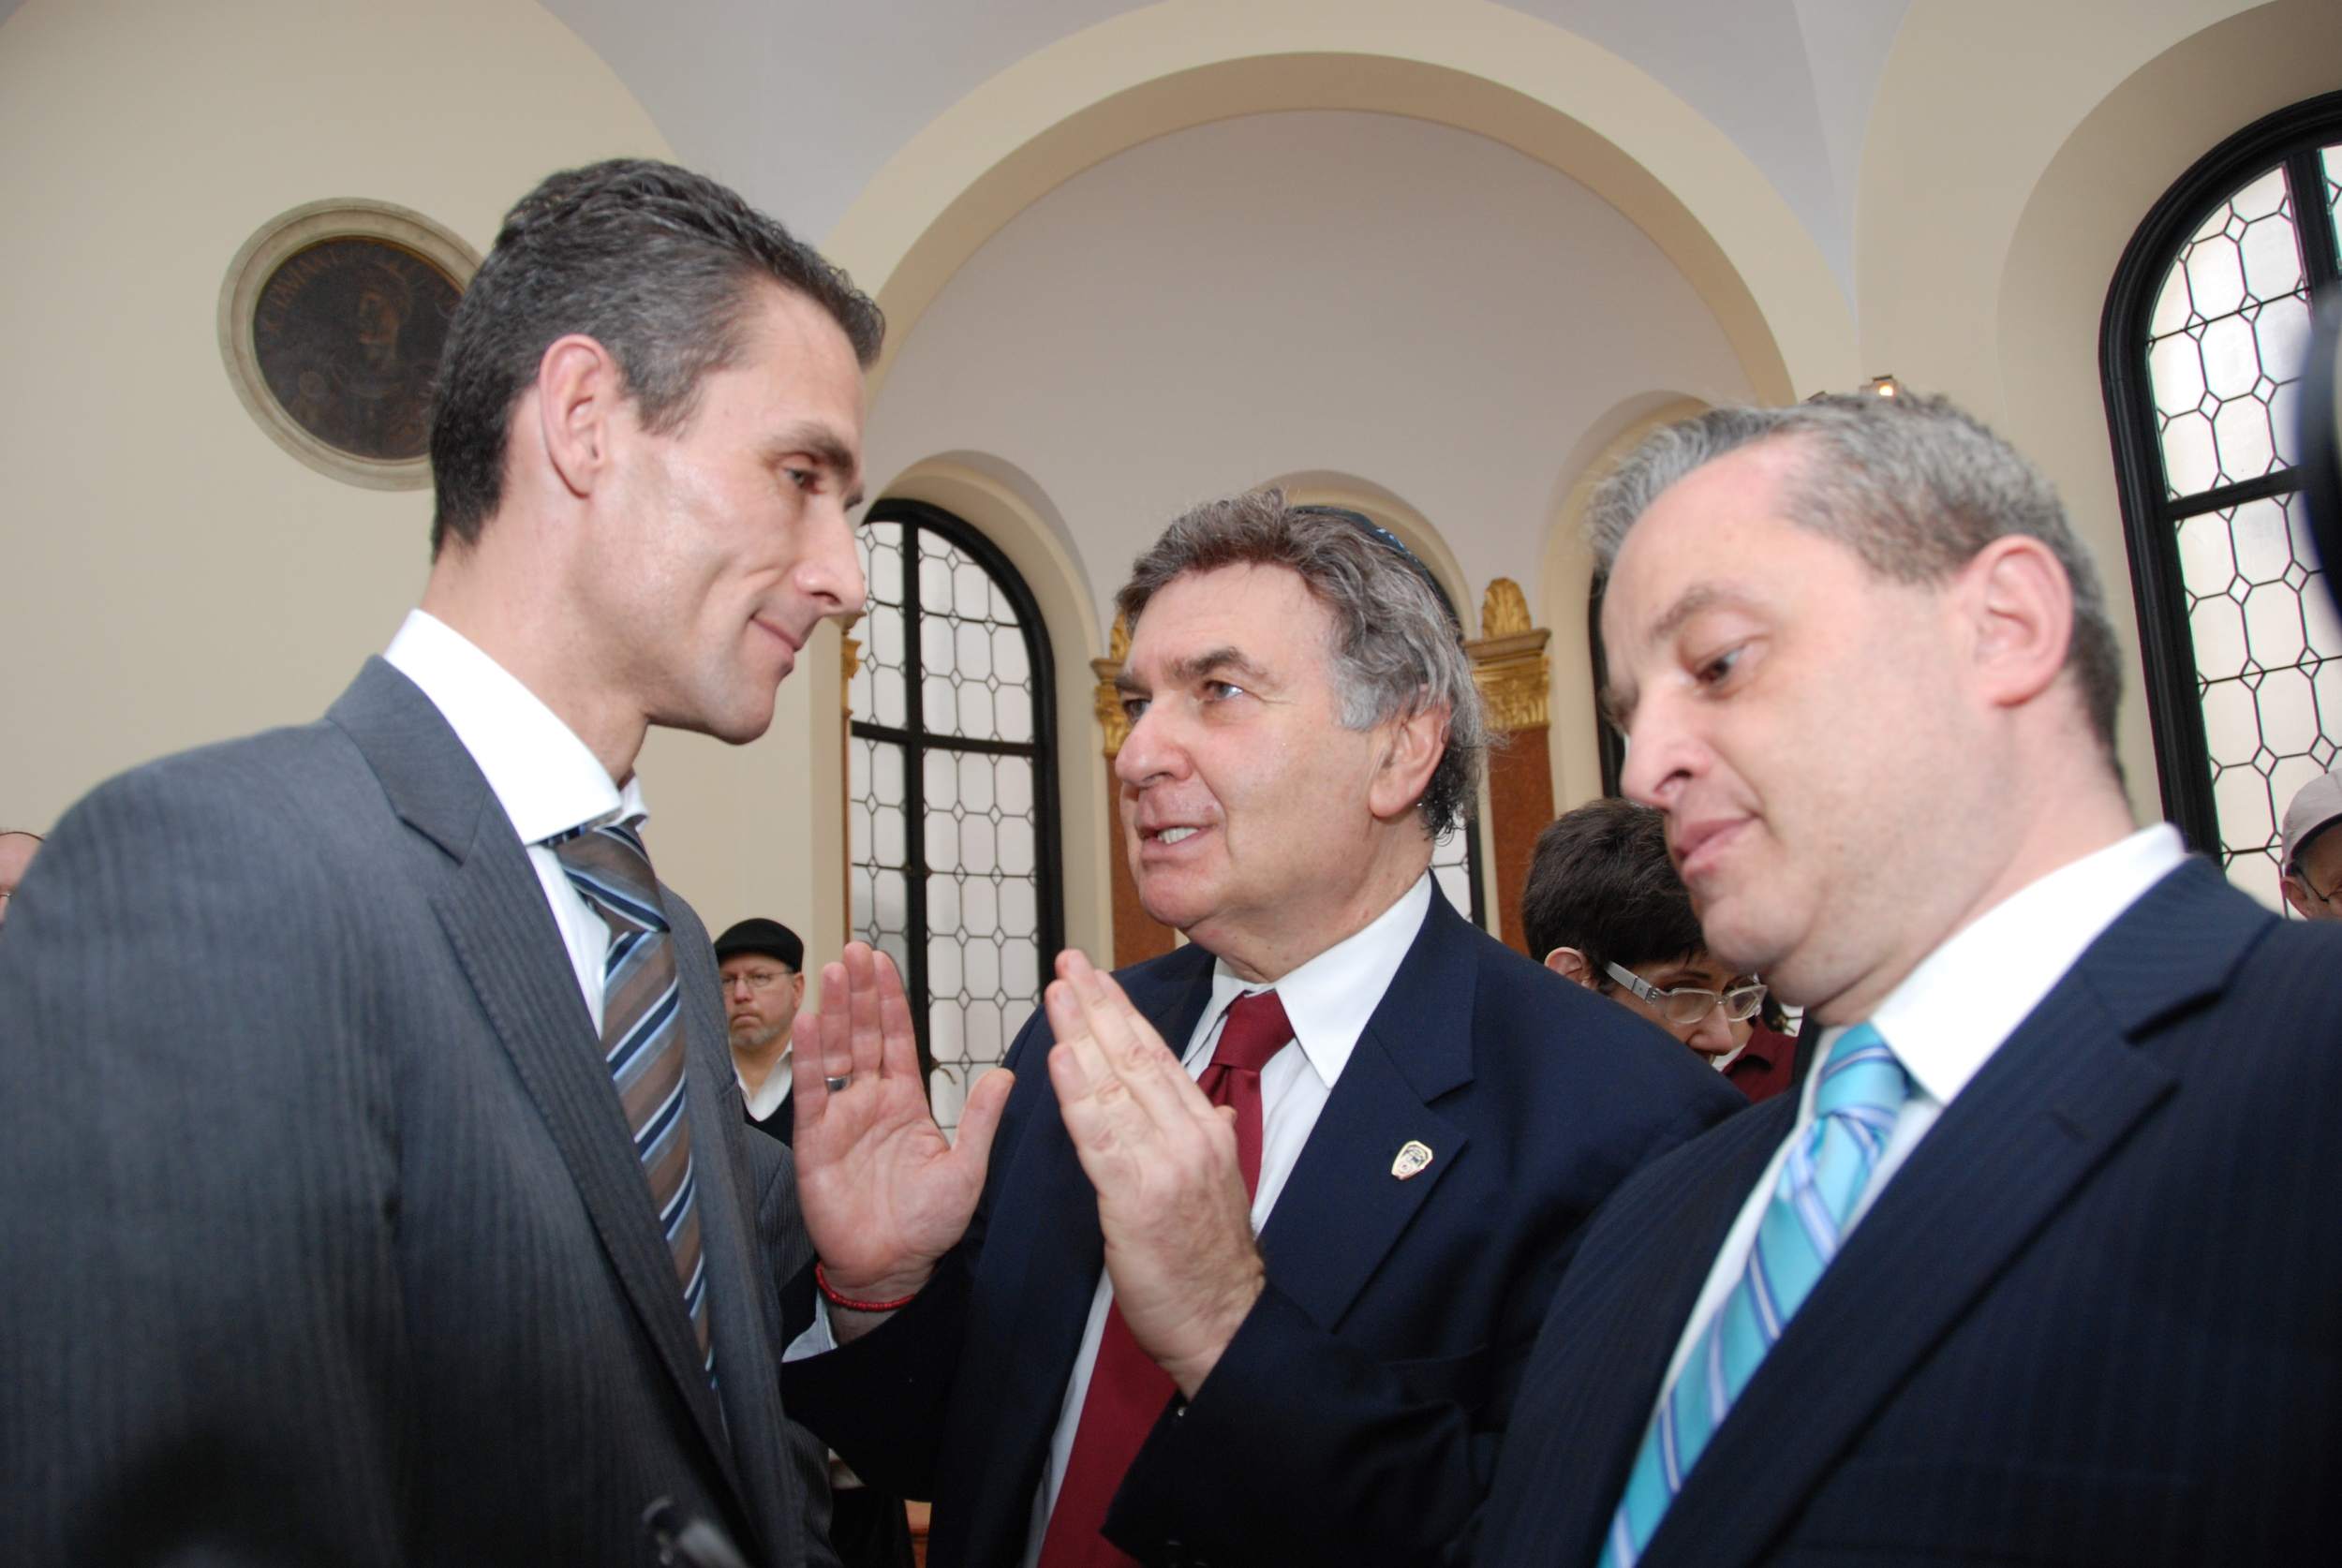 Click photo to download. Caption: From the right, H.E. Pierre Lalliot, Consul General of France in New York, Rabbi Joseph Potasnik, Vice President of the New York Board of Rabbis, Ibrahim Kurtulus, Advisor to the President of the Federation of Turkish American Associations. Credit: Maxine Dovere.